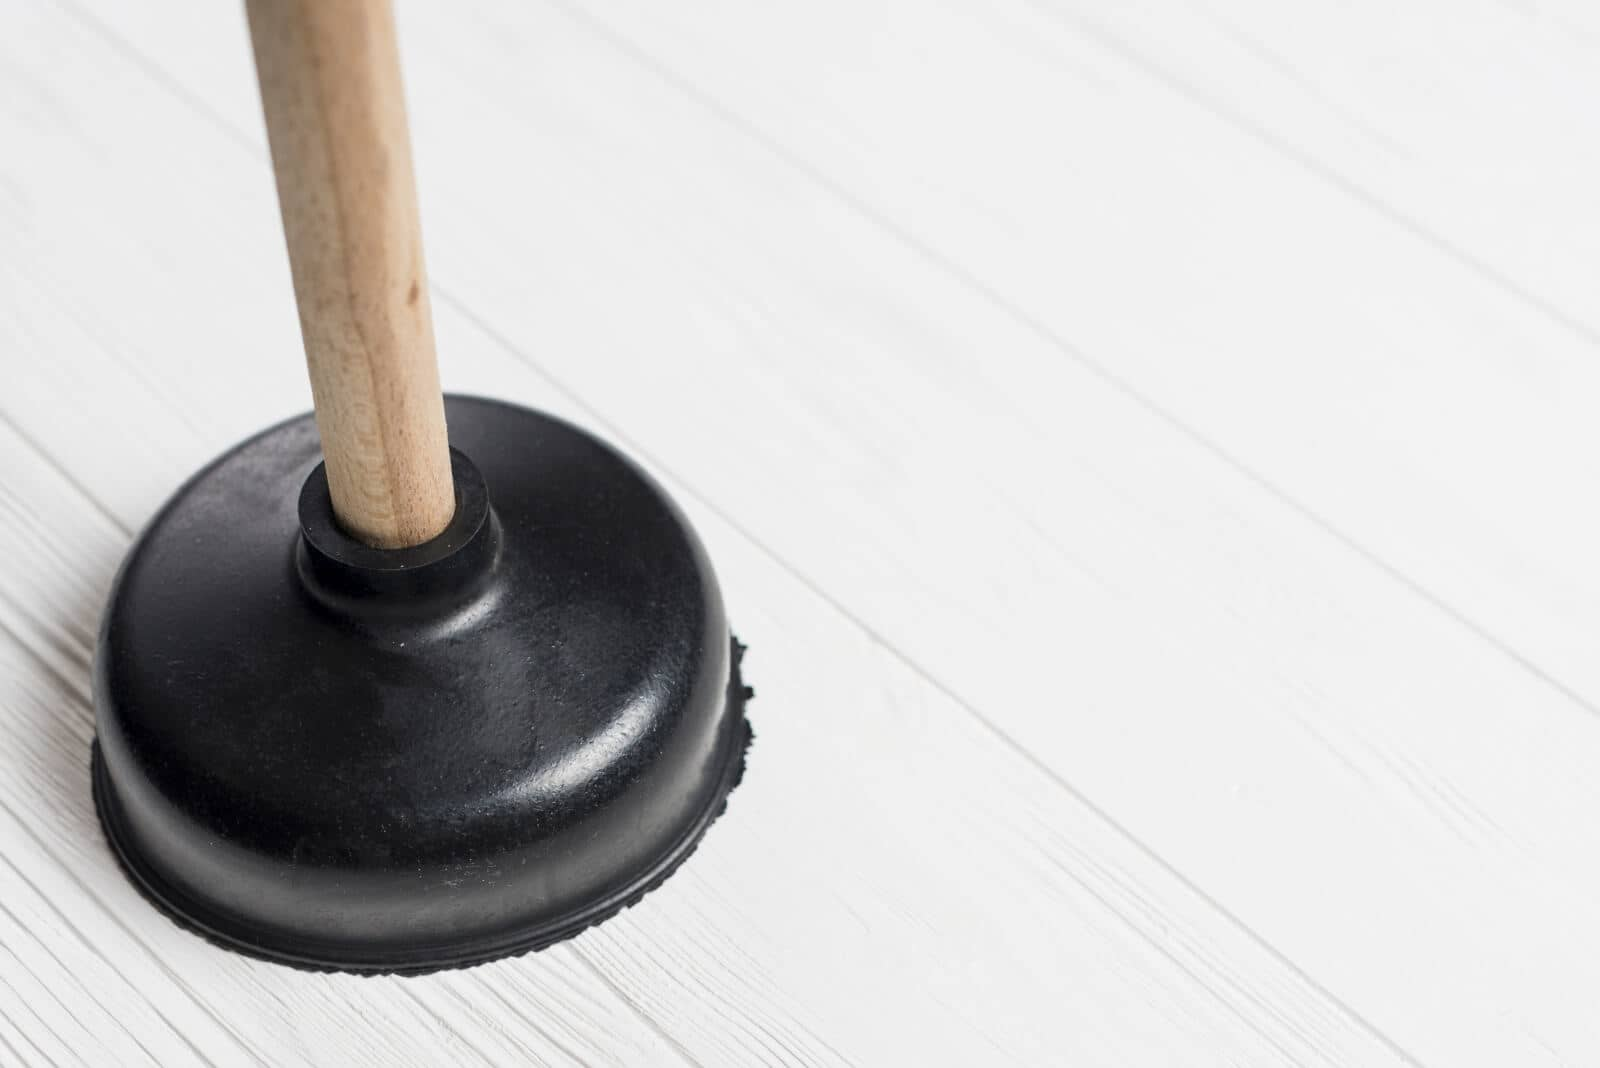 Tips For Clearing A Blocked Drain